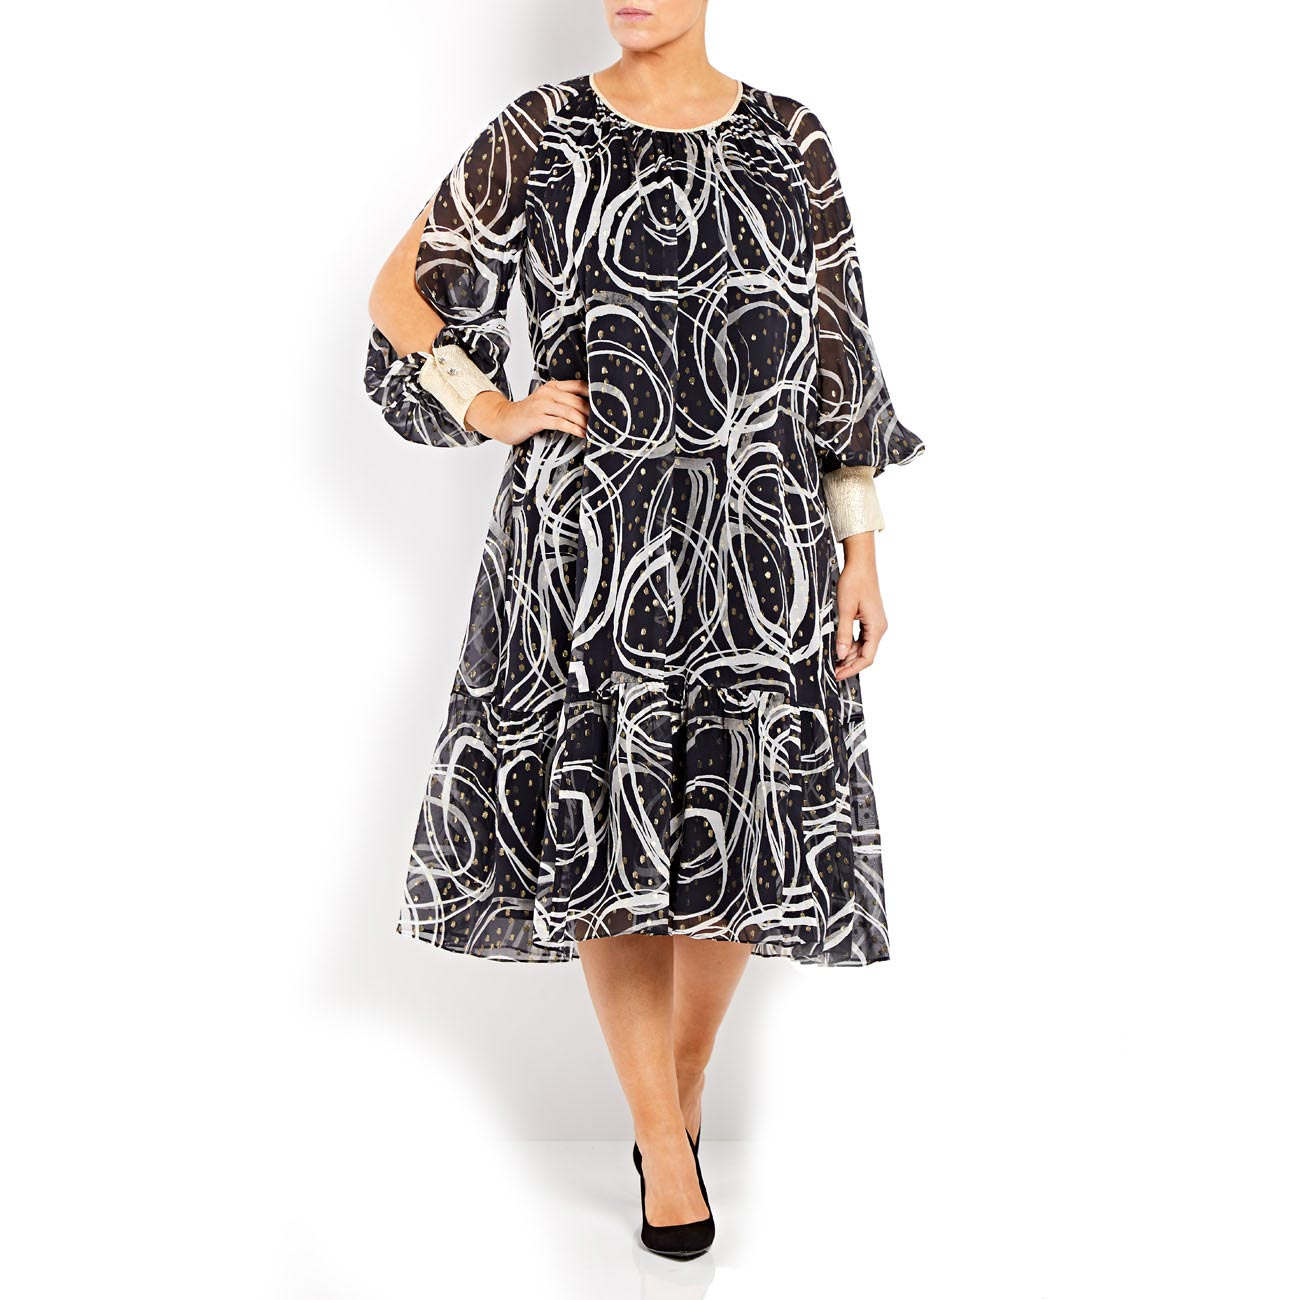 Marina Rinaldi Plus Size Clothing Range